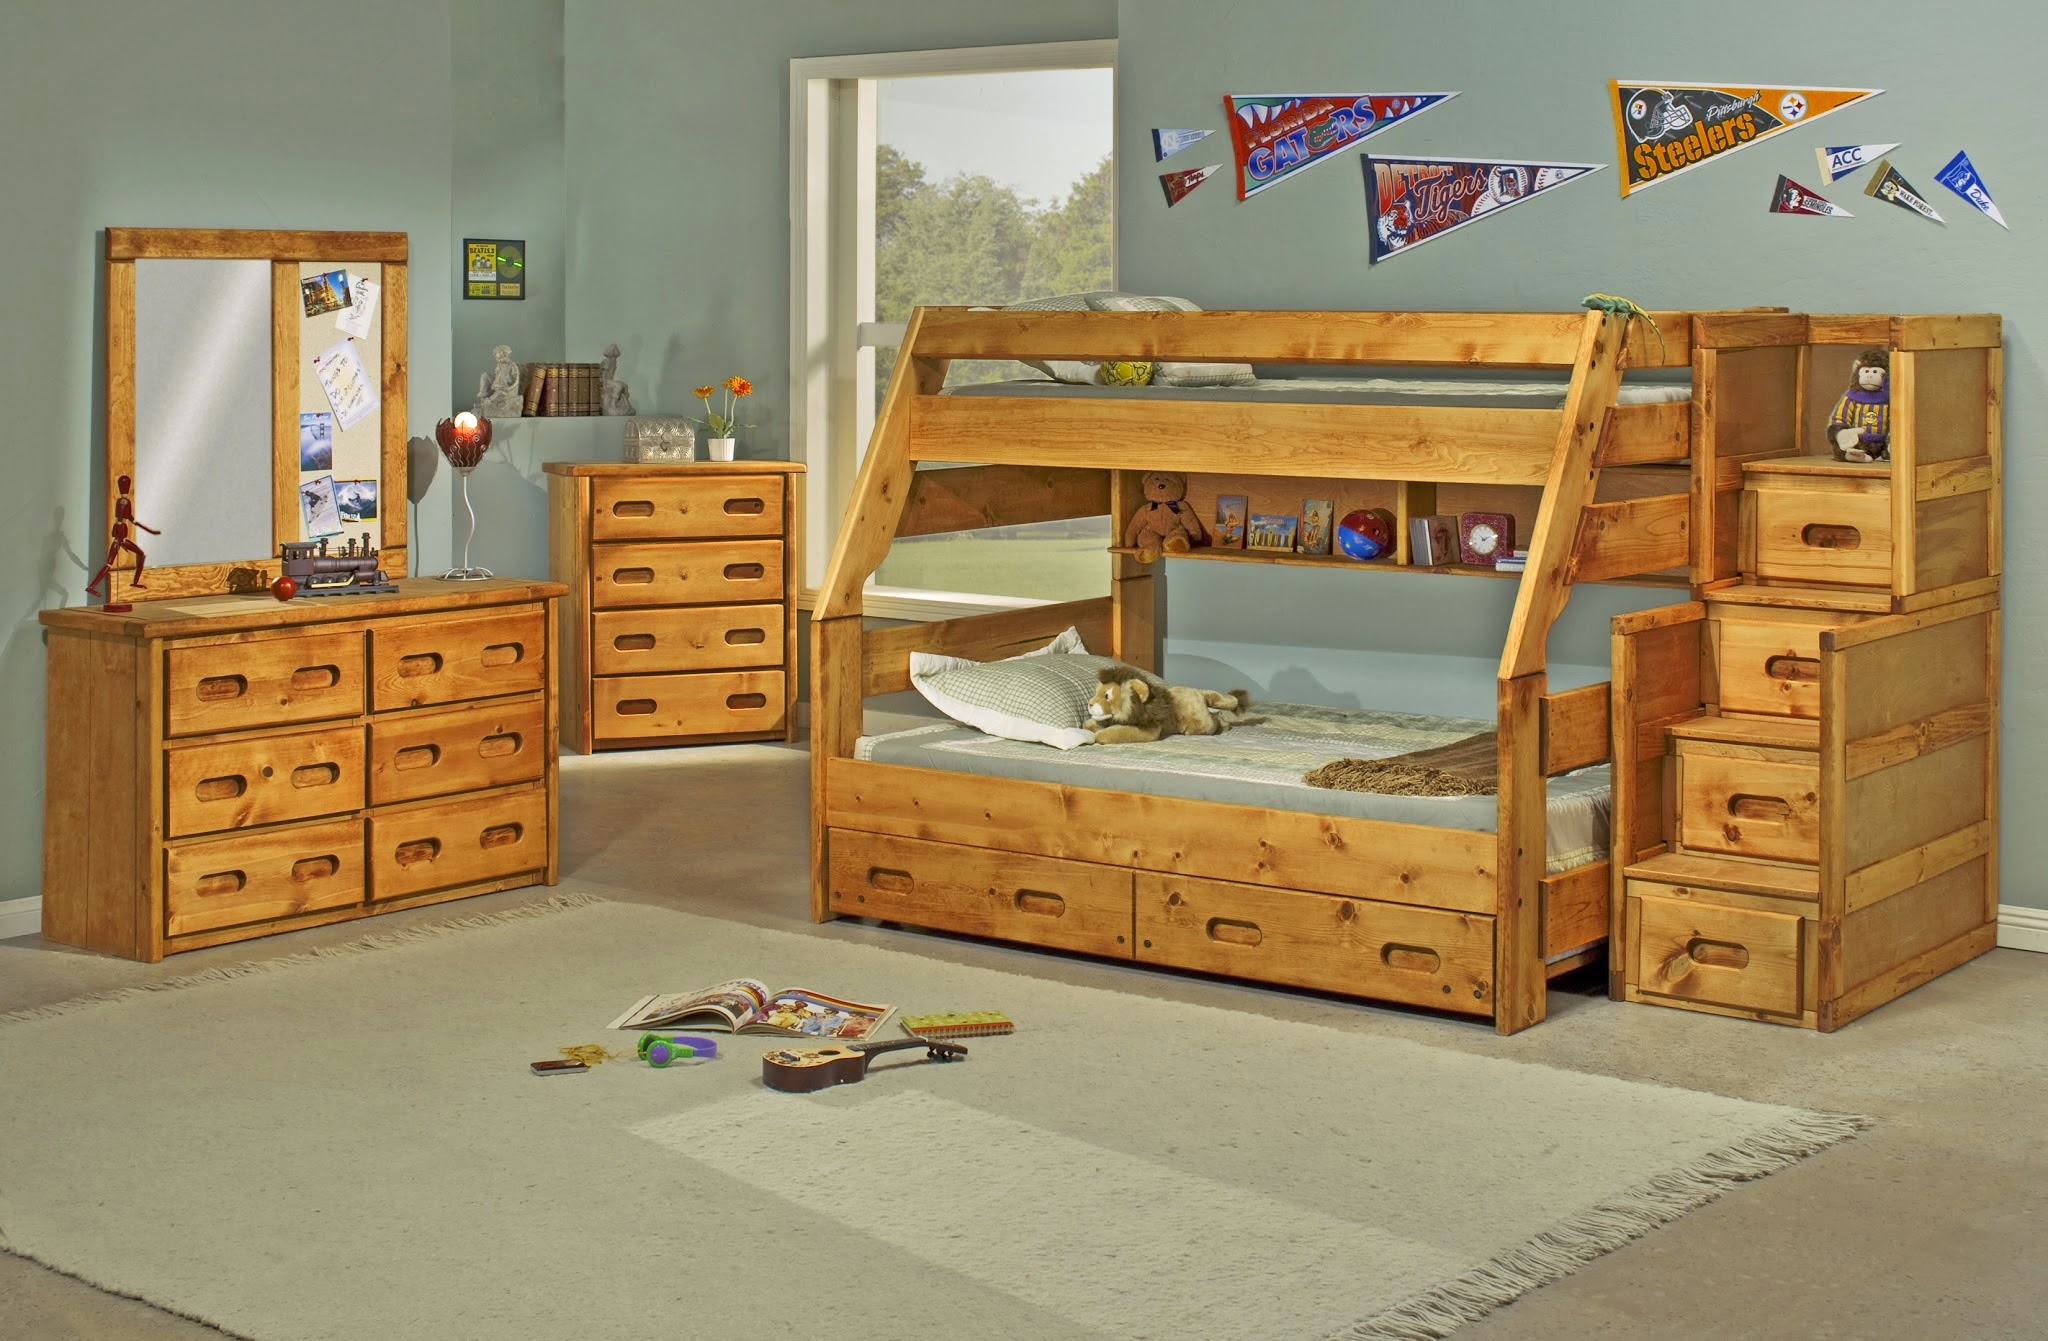 Unique Solid Pine Bunk Beds and Bedroom Sets by Rustic Classics The solid pine bunk